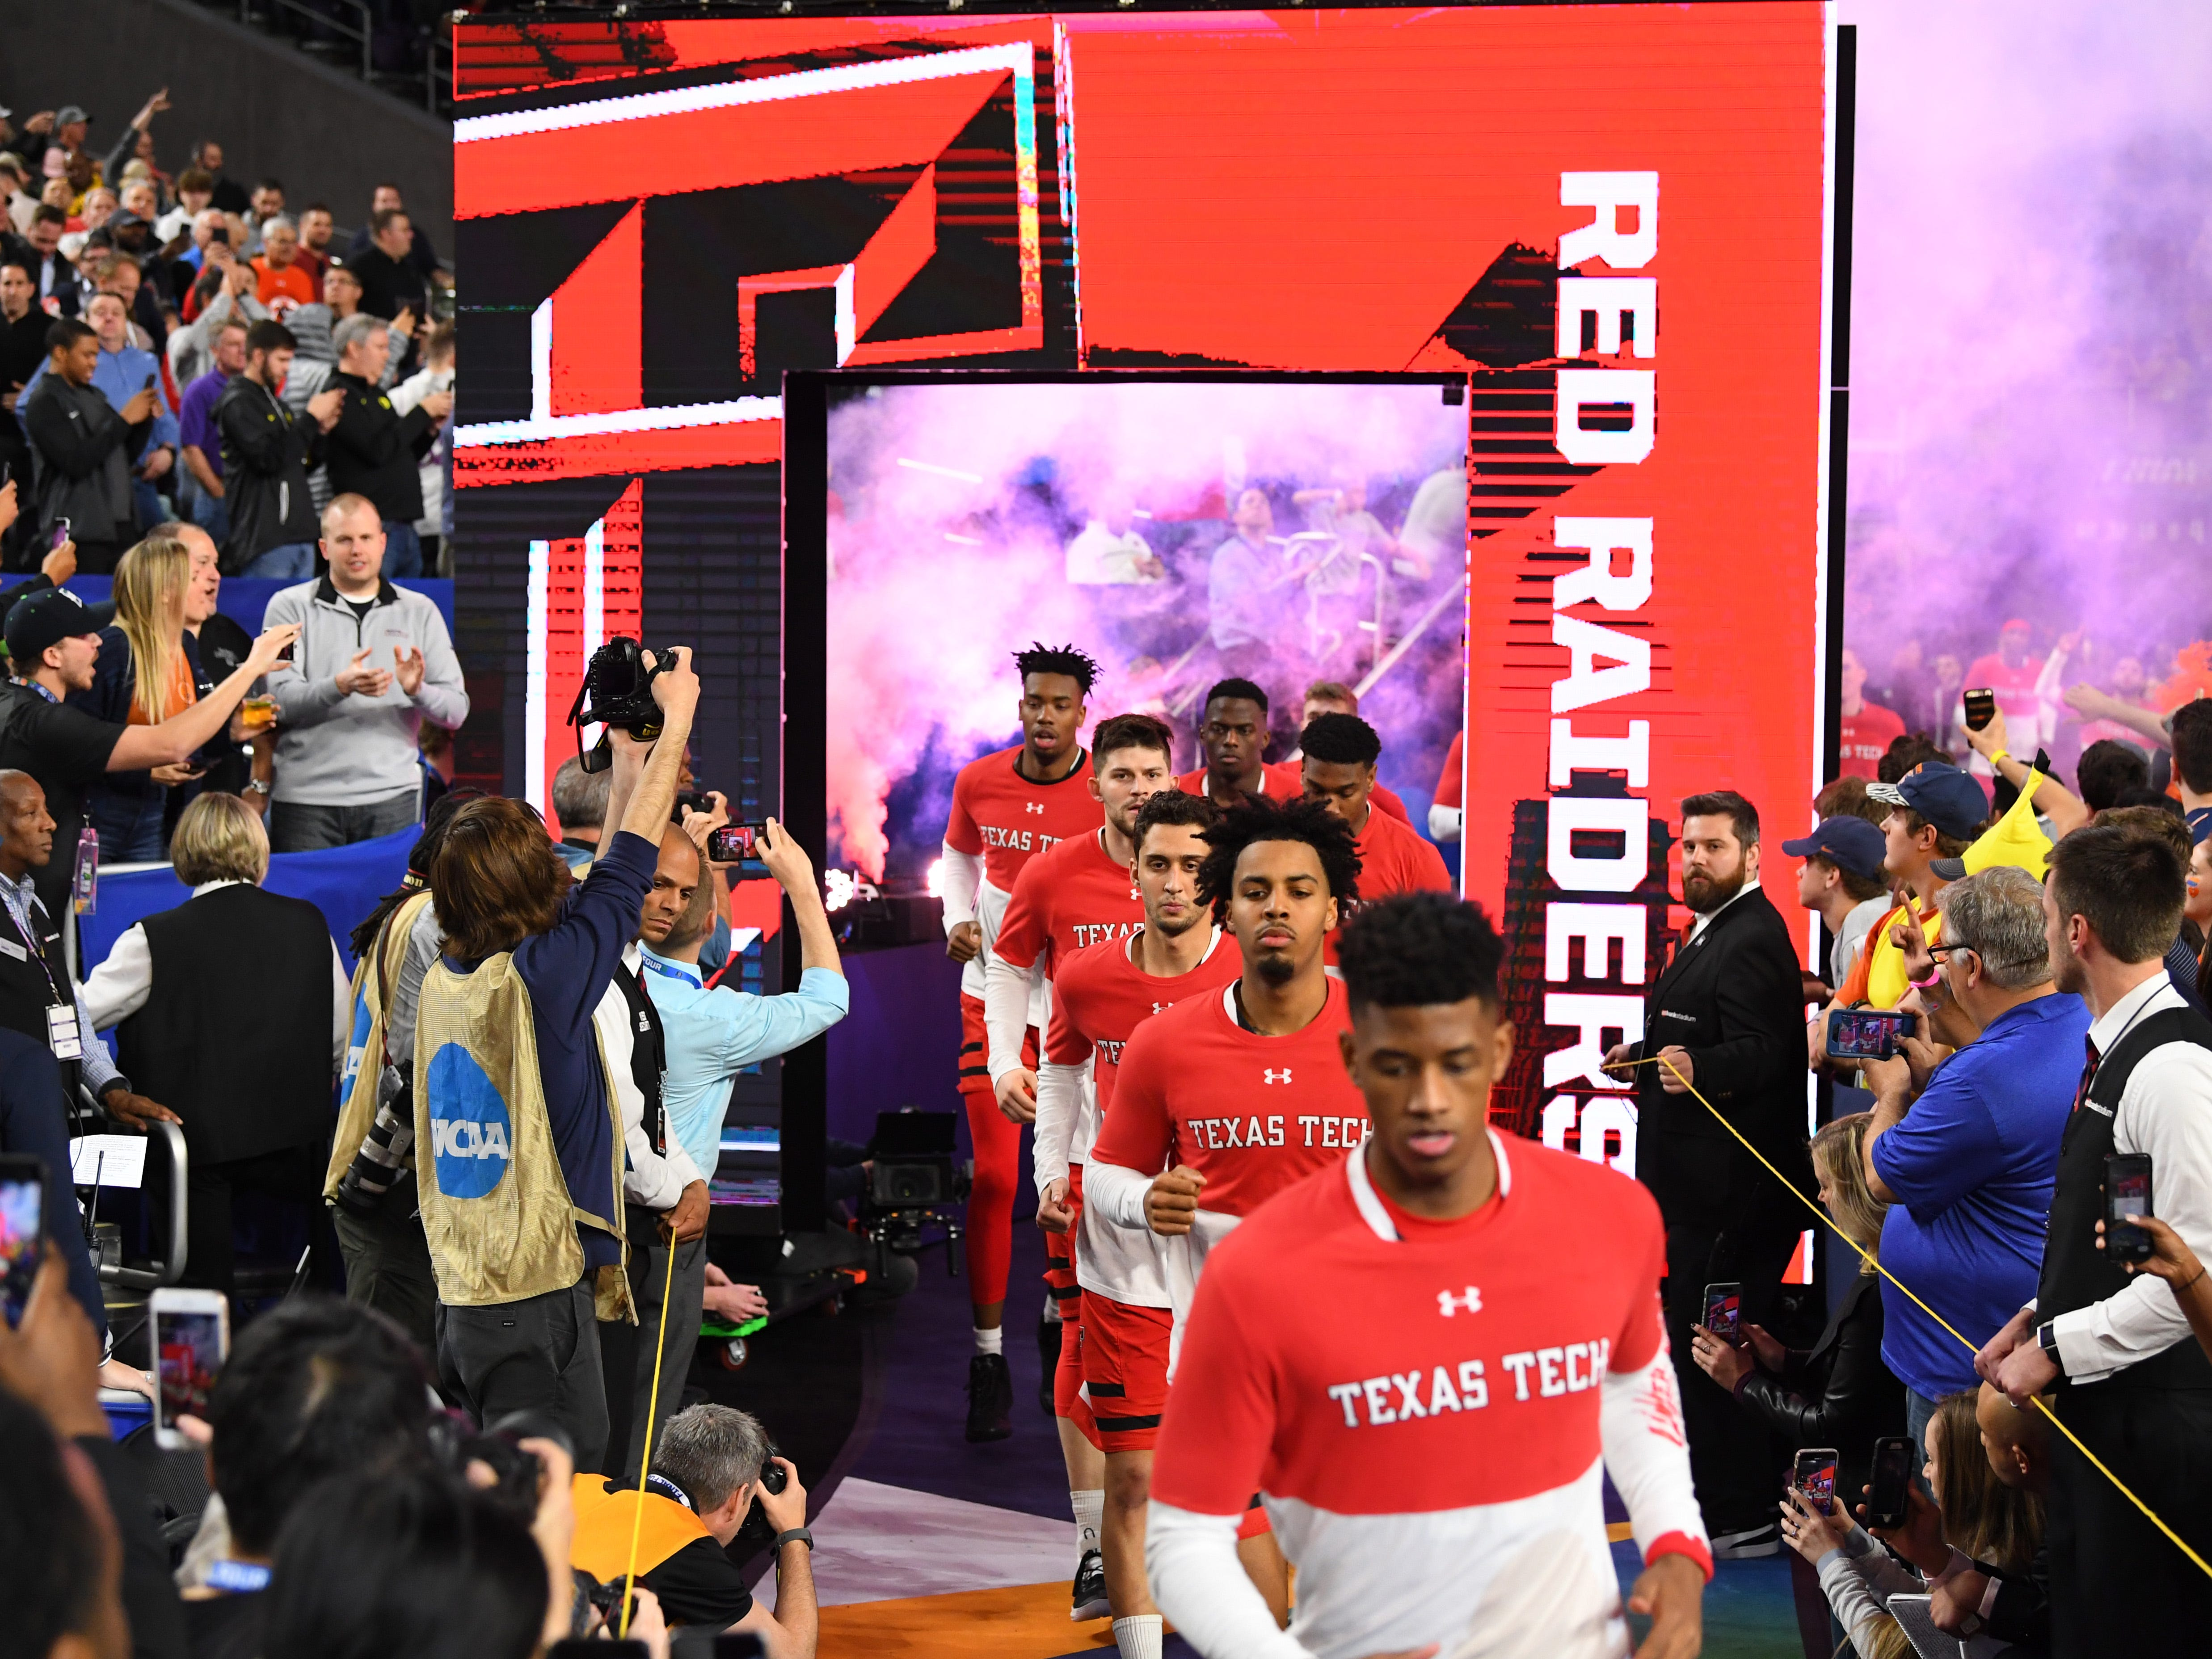 The Texas Tech Red Raiders take the floor prior to facing the Virginia Cavaliers in the championship game.